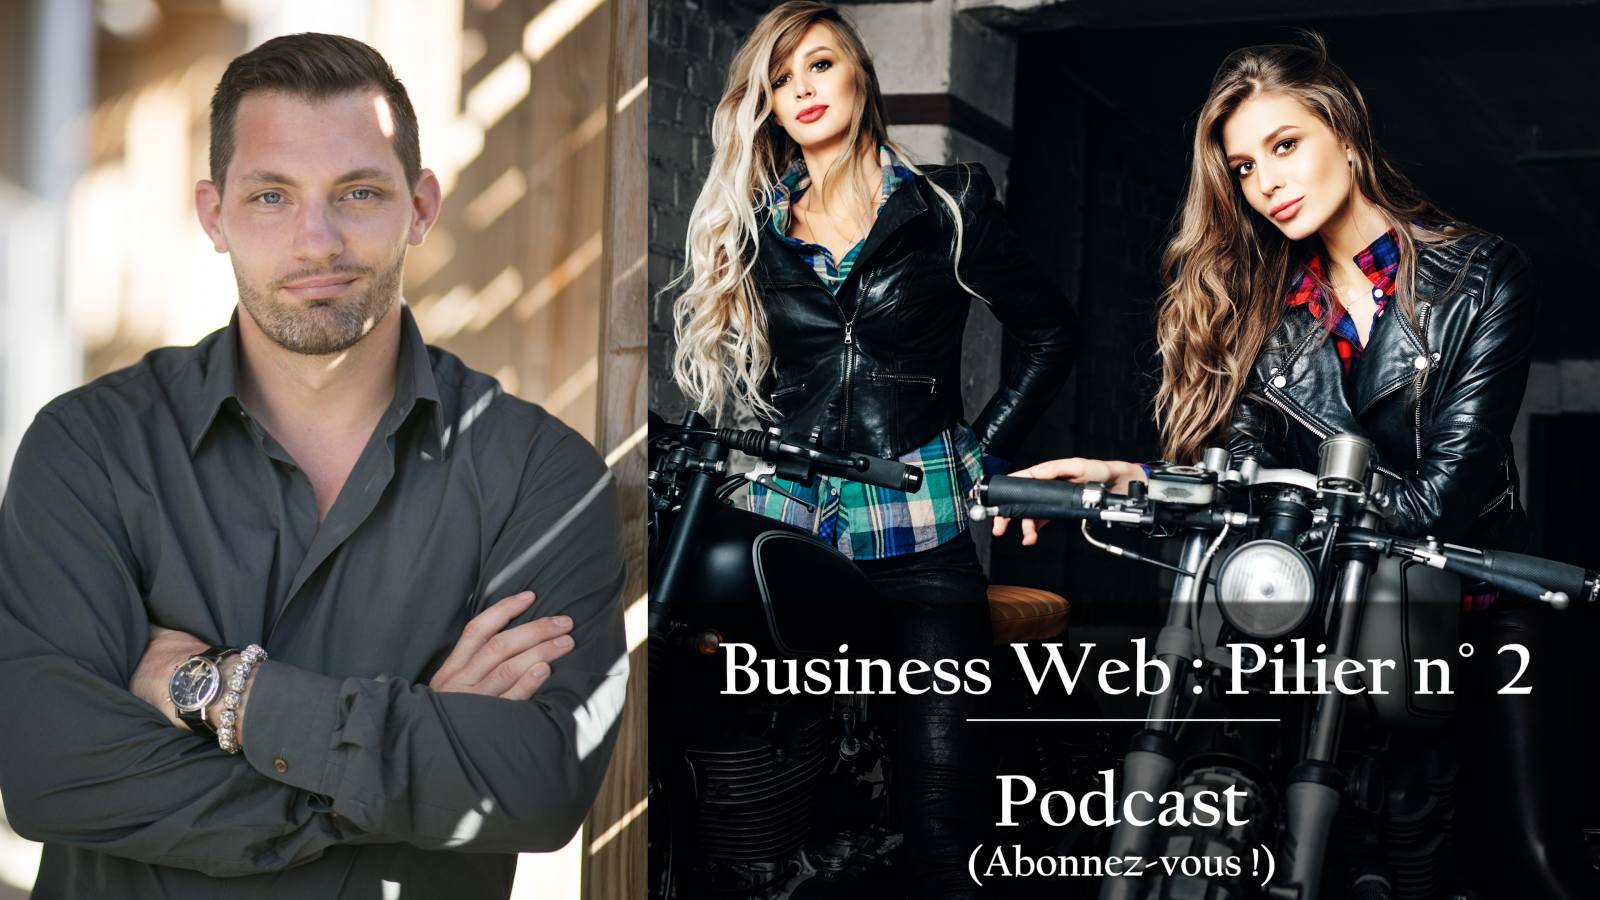 11eme Podcast - Business Web : Pilier n°2